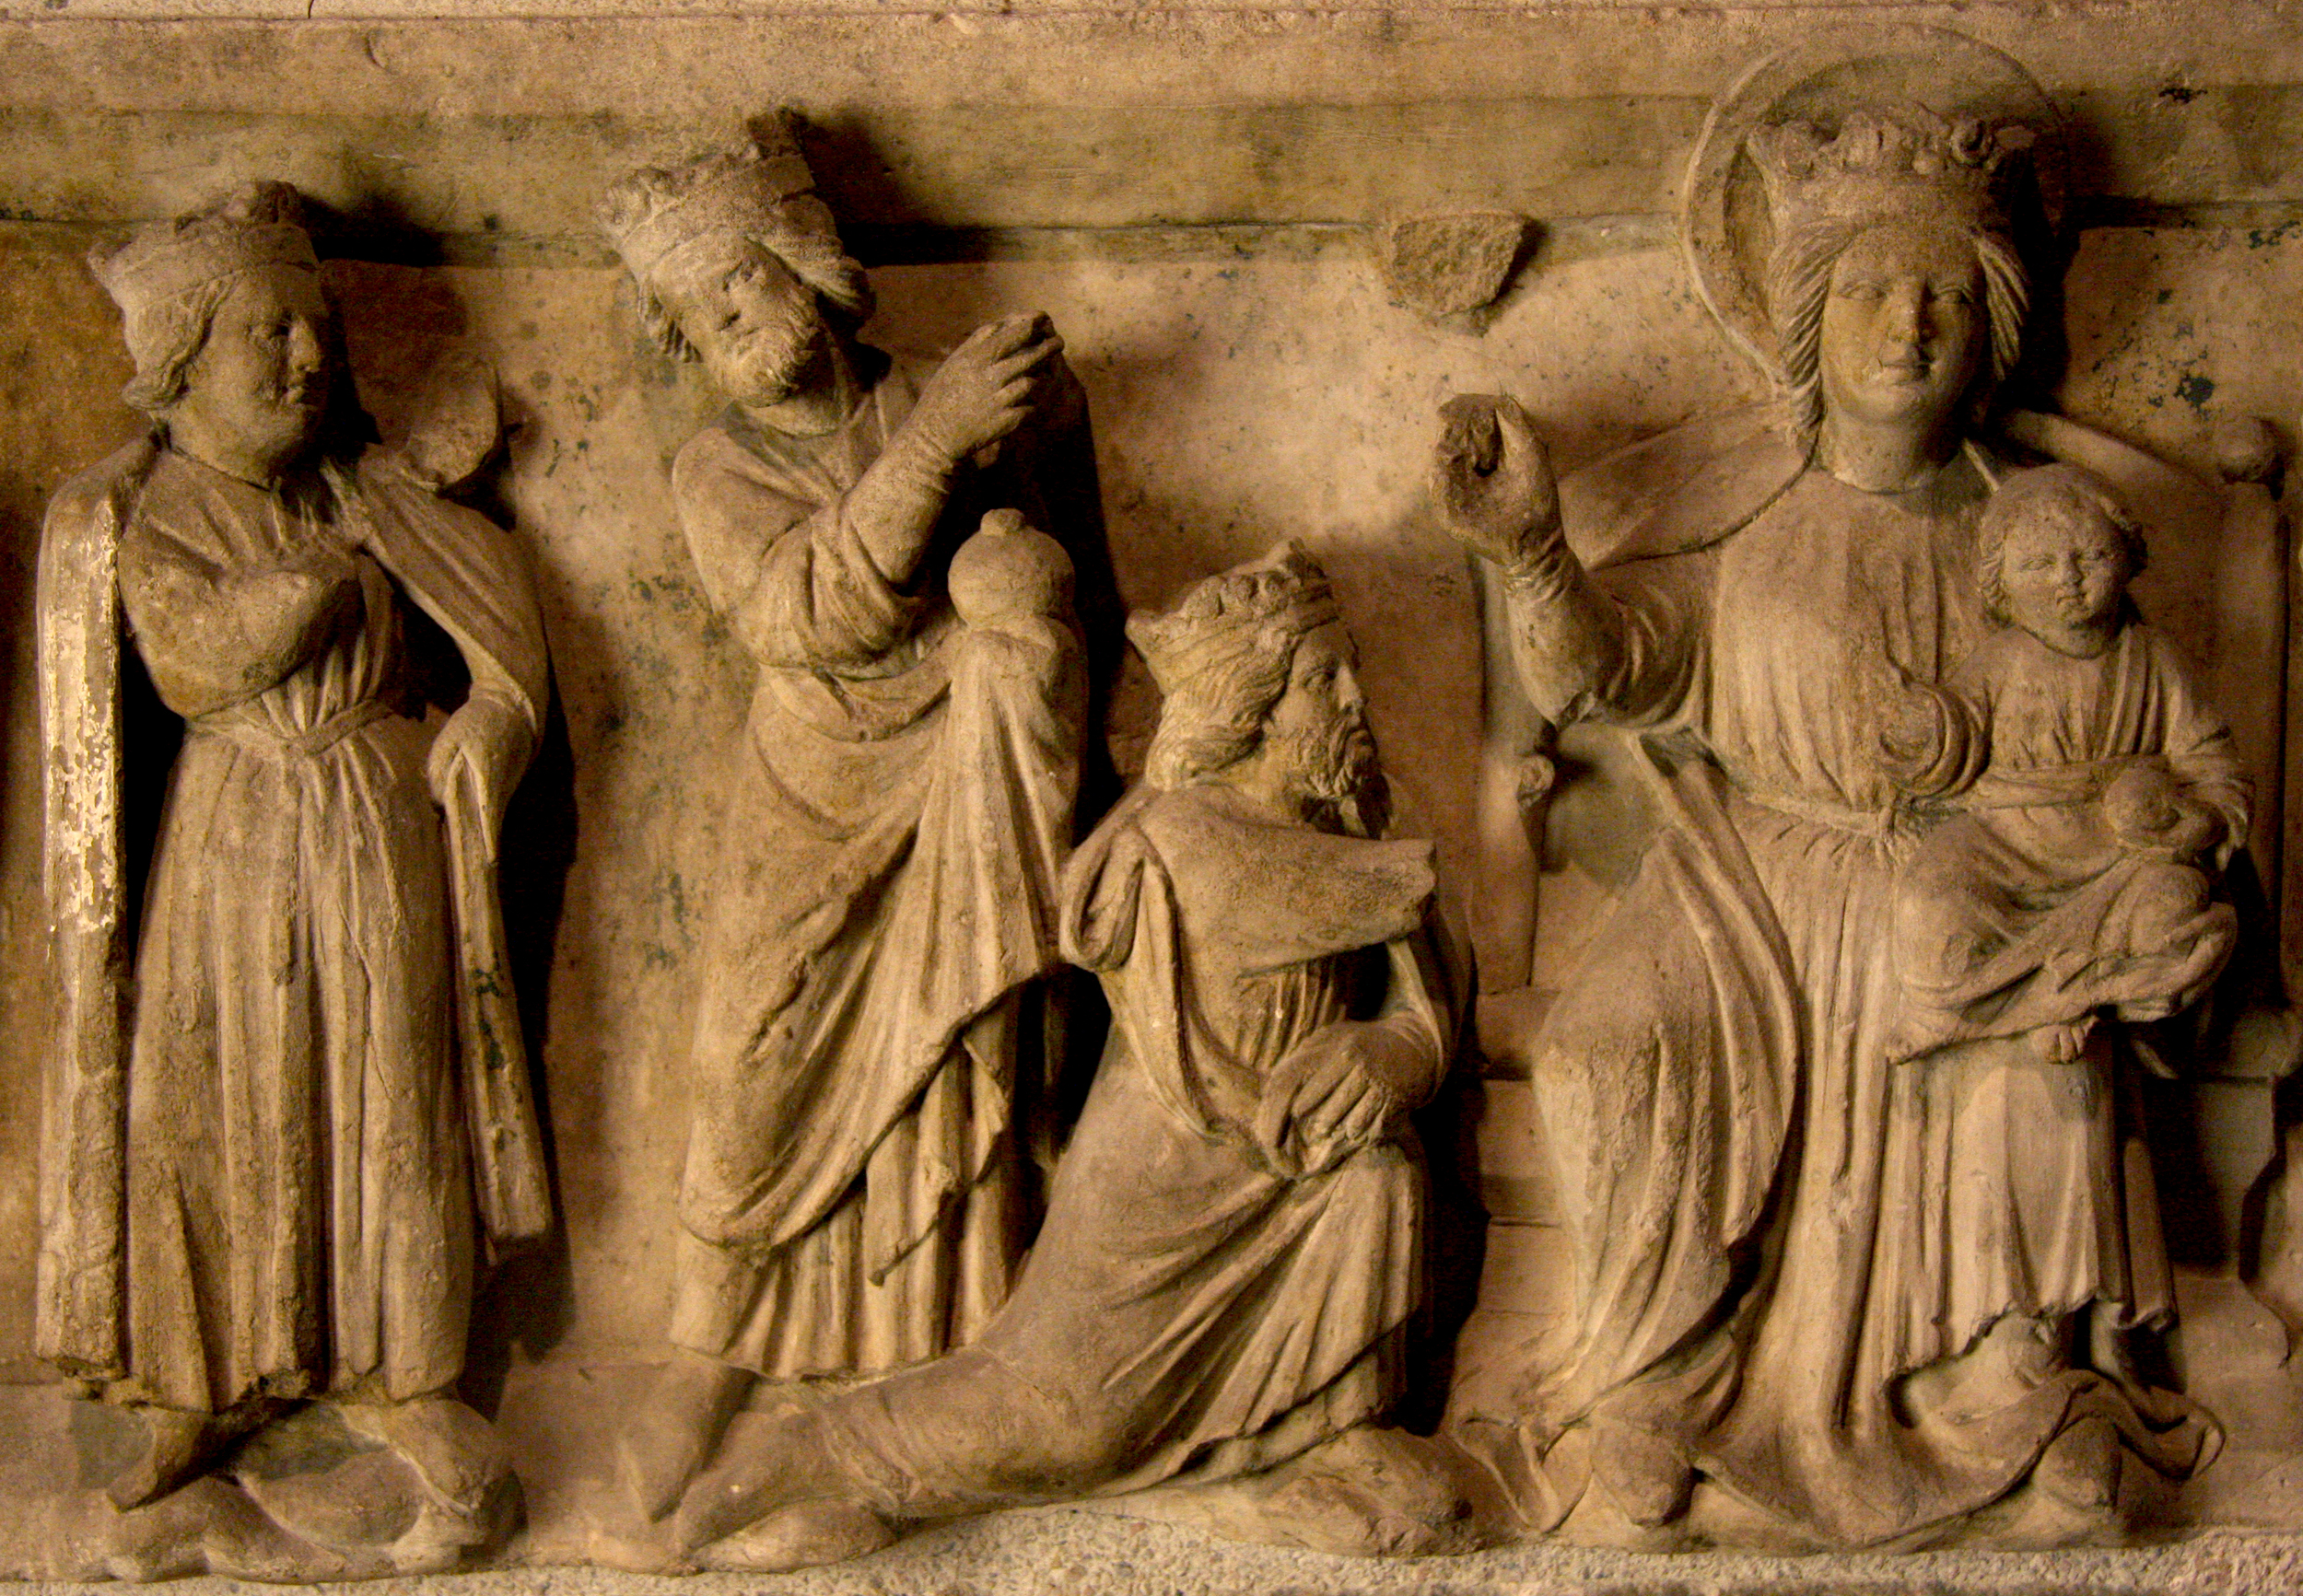 This limestone relief with the Adoration of the Wise Men, in the collection of Glencairn Museum (09.SP.119), was made in 13th-century France. The first wise man, whose arm is broken off, is depicted kneeling and presenting a gift. All three men are represented as kings with crowns, in keeping with medieval tradition.